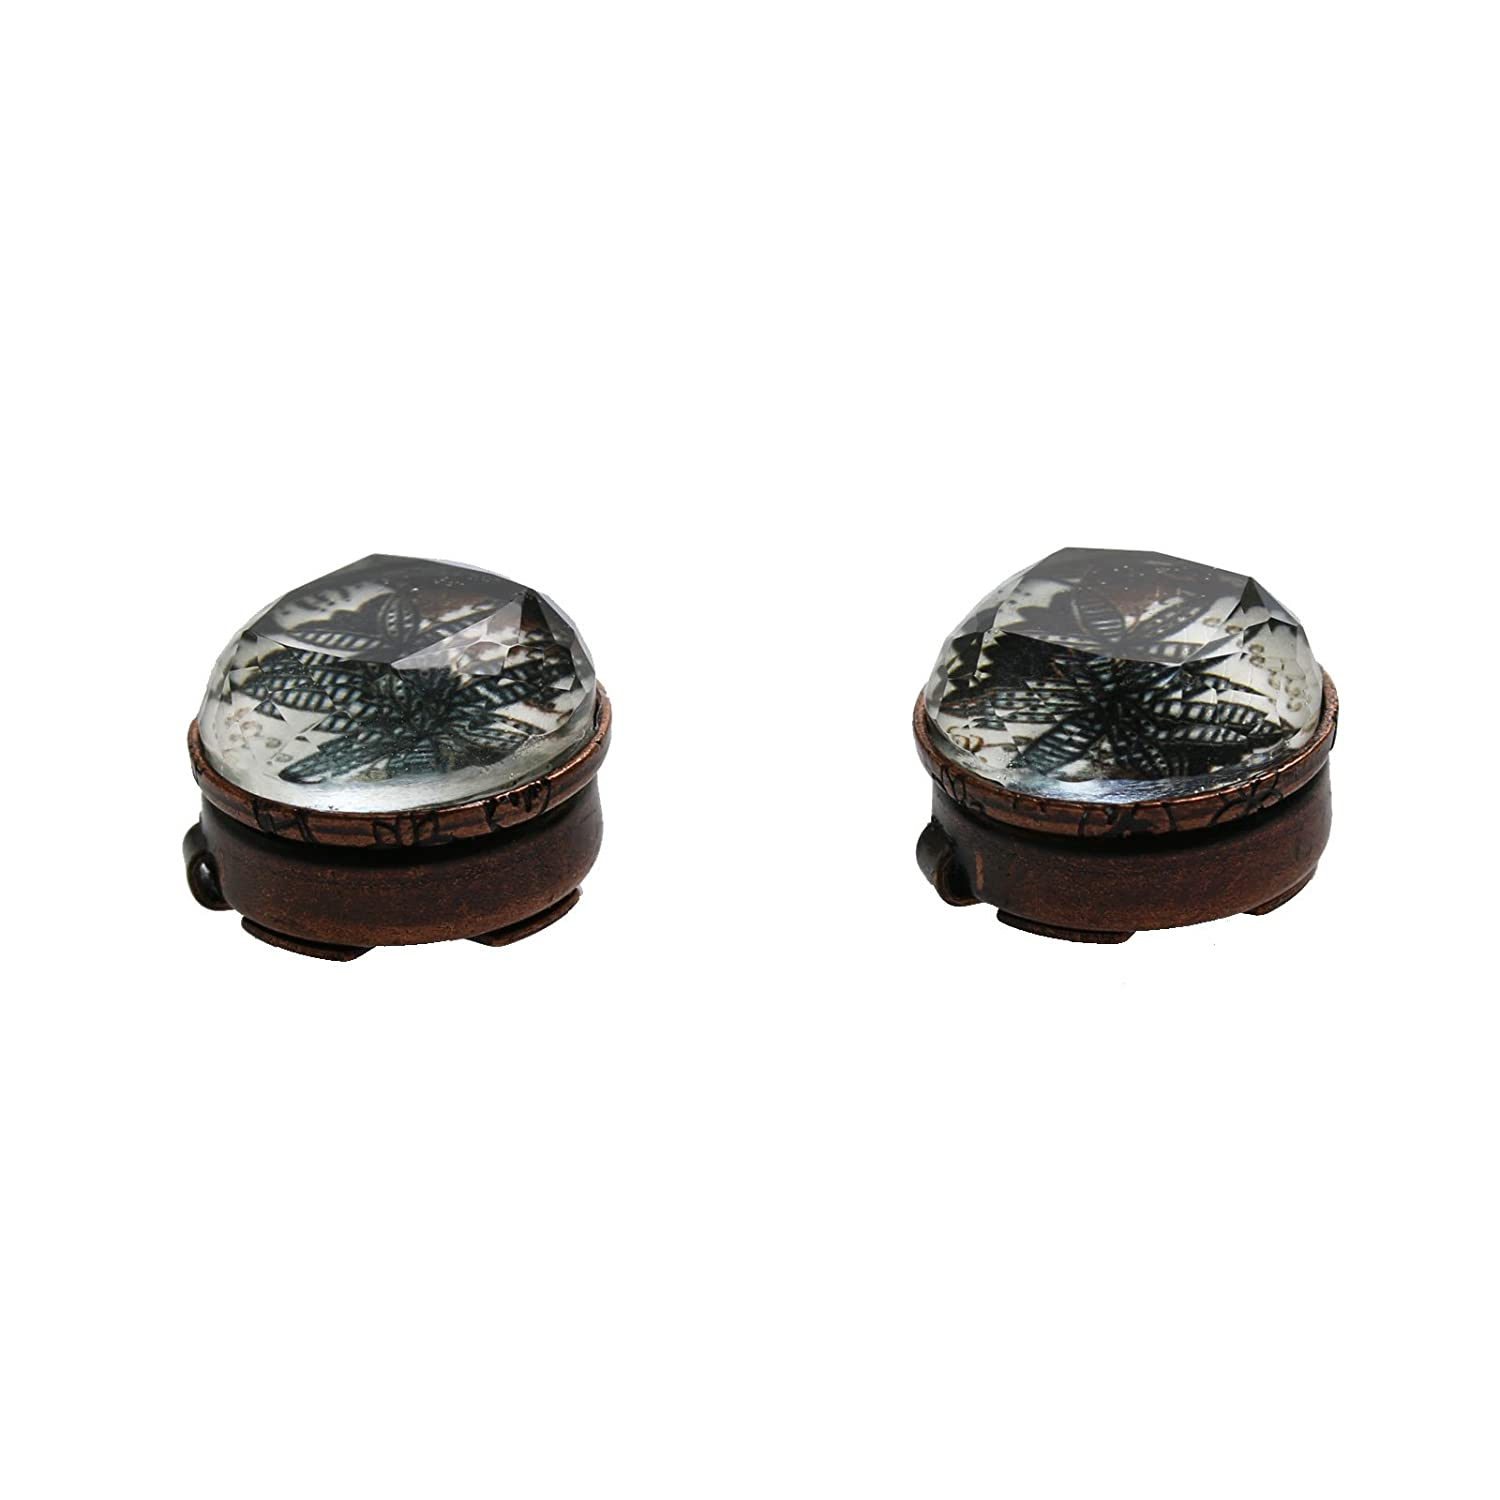 TAMARUSAN Button Cover Lily Cufflinks Handmade Resin